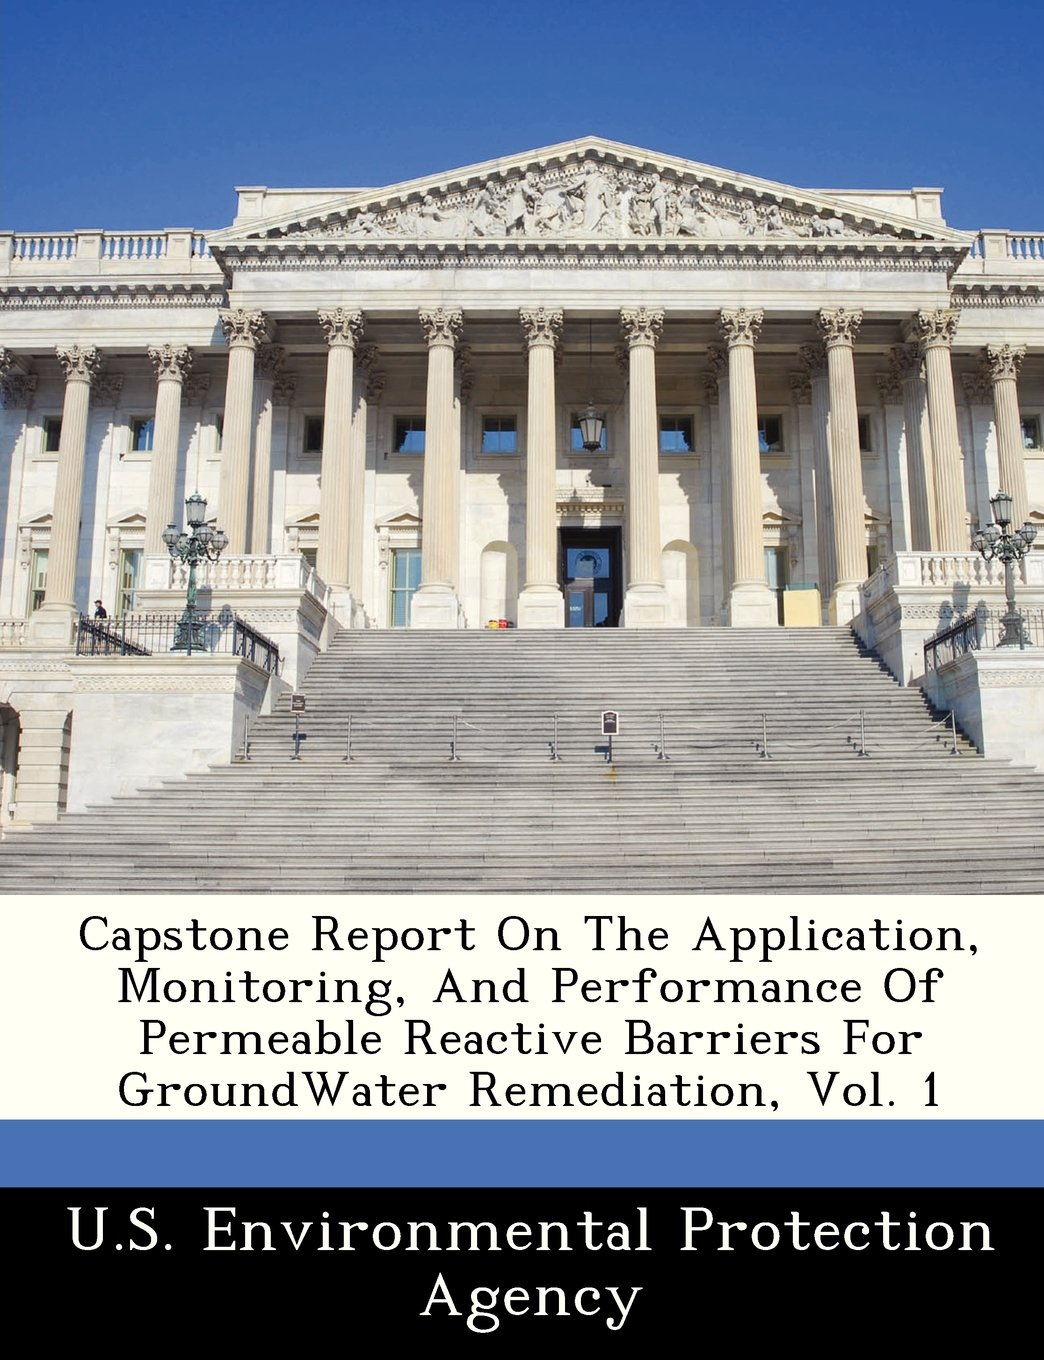 Capstone Report On The Application, Monitoring, And Performance Of Permeable Reactive Barriers For GroundWater Remediation, Vol. 1 pdf